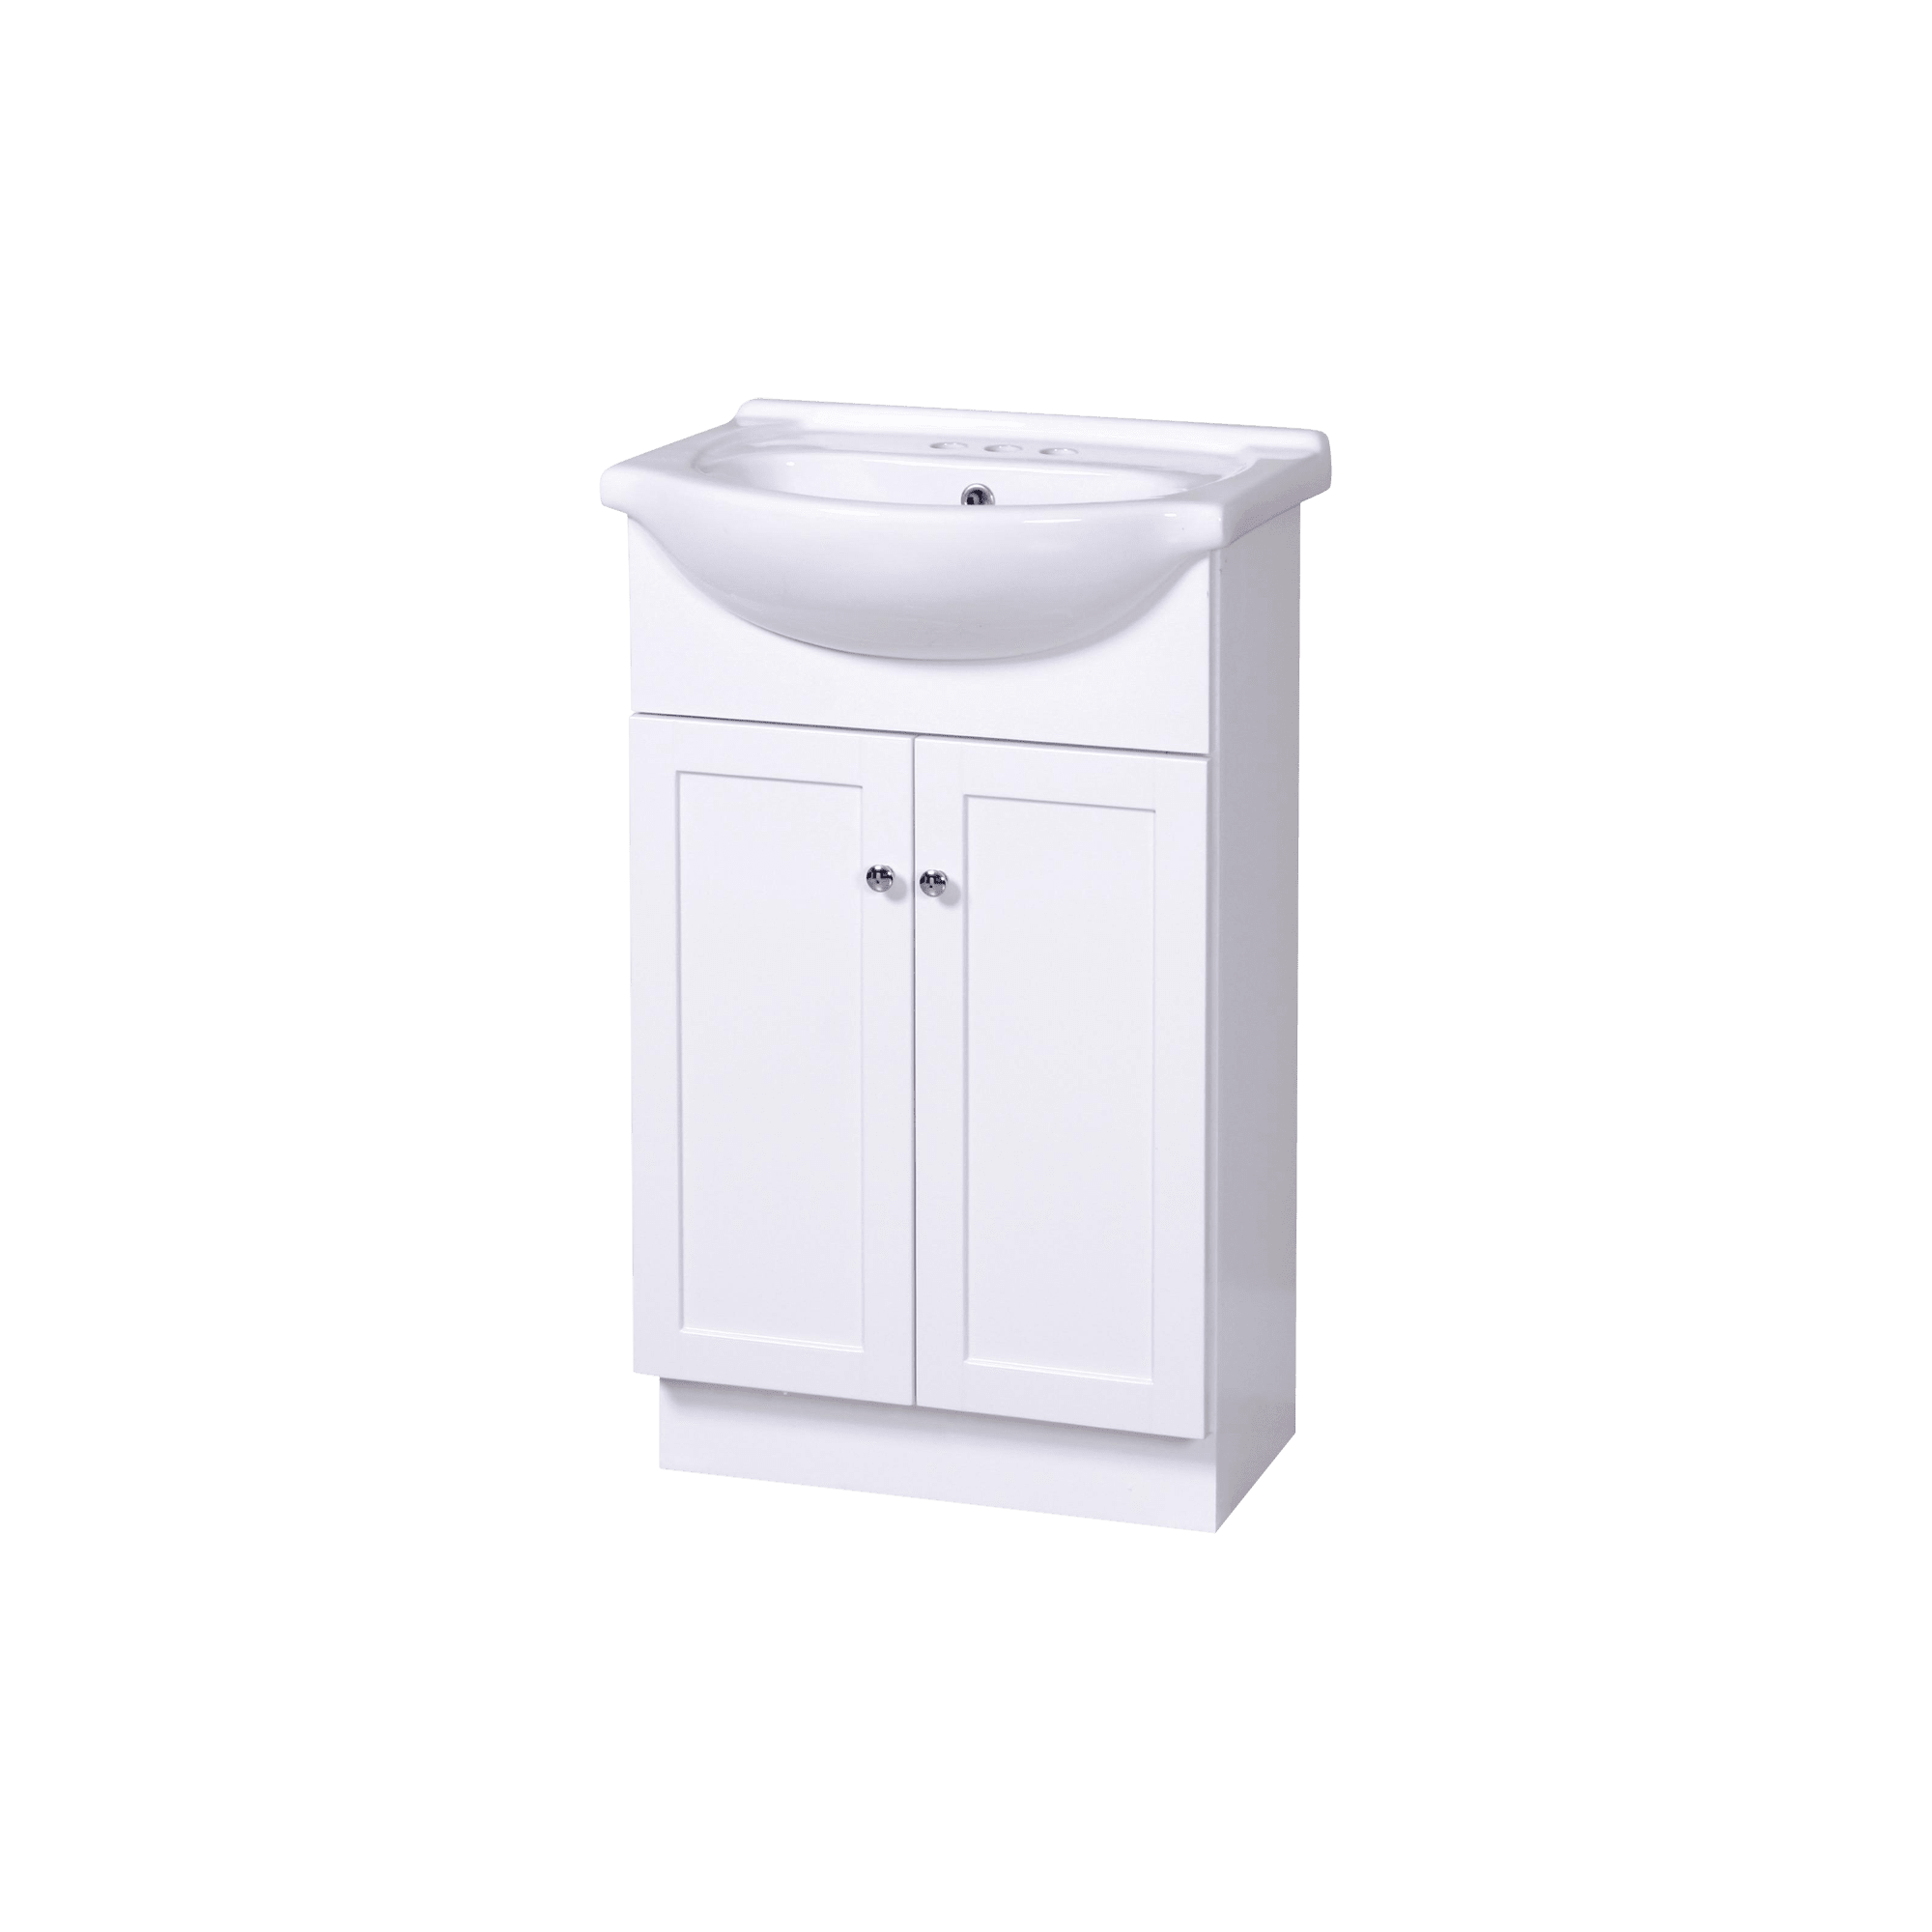 bathroom vanity design mounted ja fans small columbia storage chea cabinets scales foremost wall ideas wayfair modern decorating x cabinet vanities corner